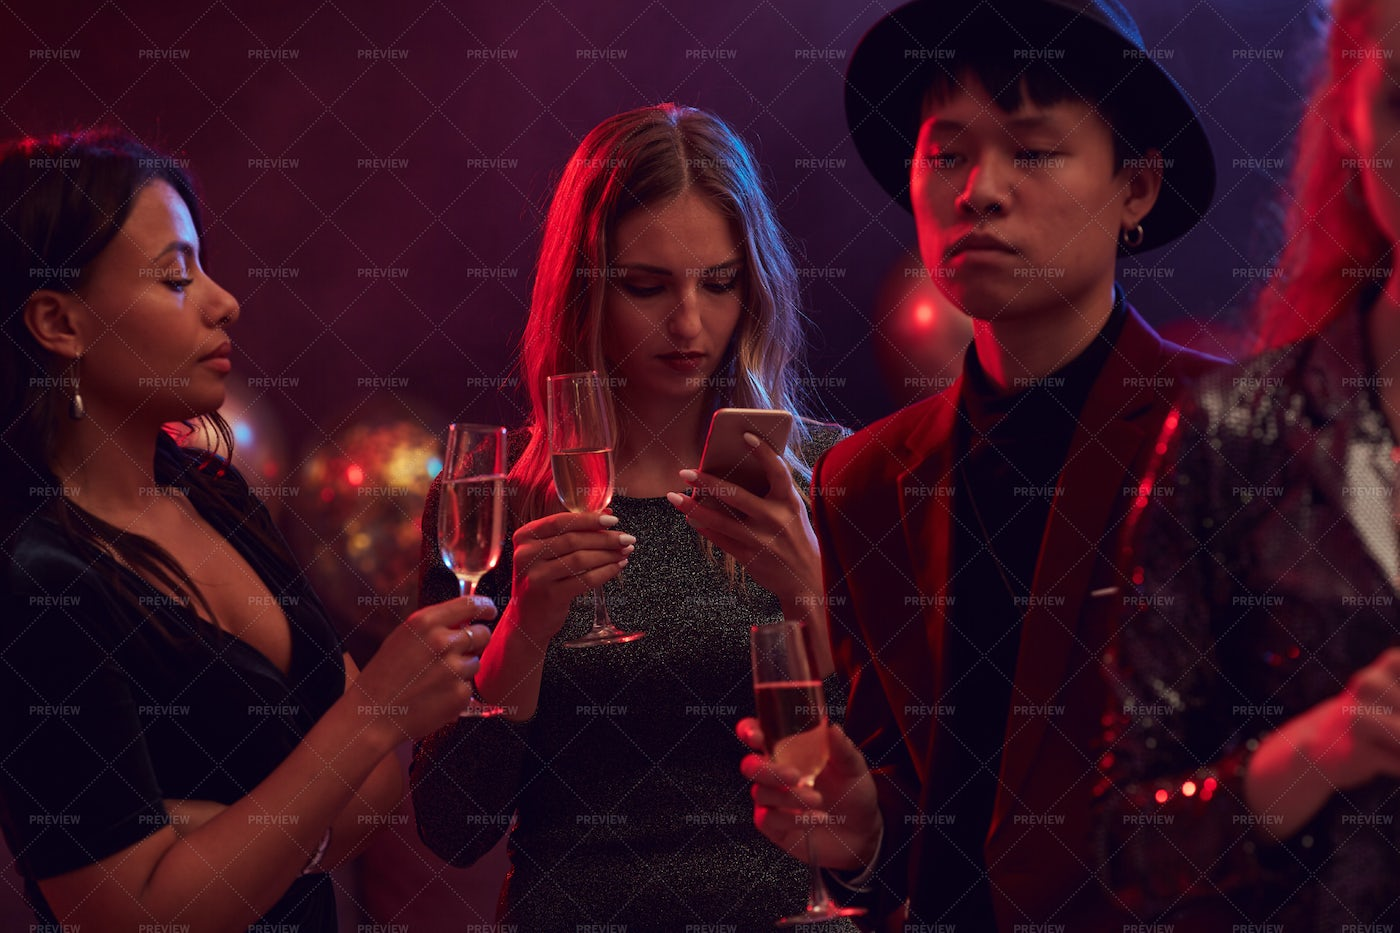 Guests At Nightclub Party: Stock Photos